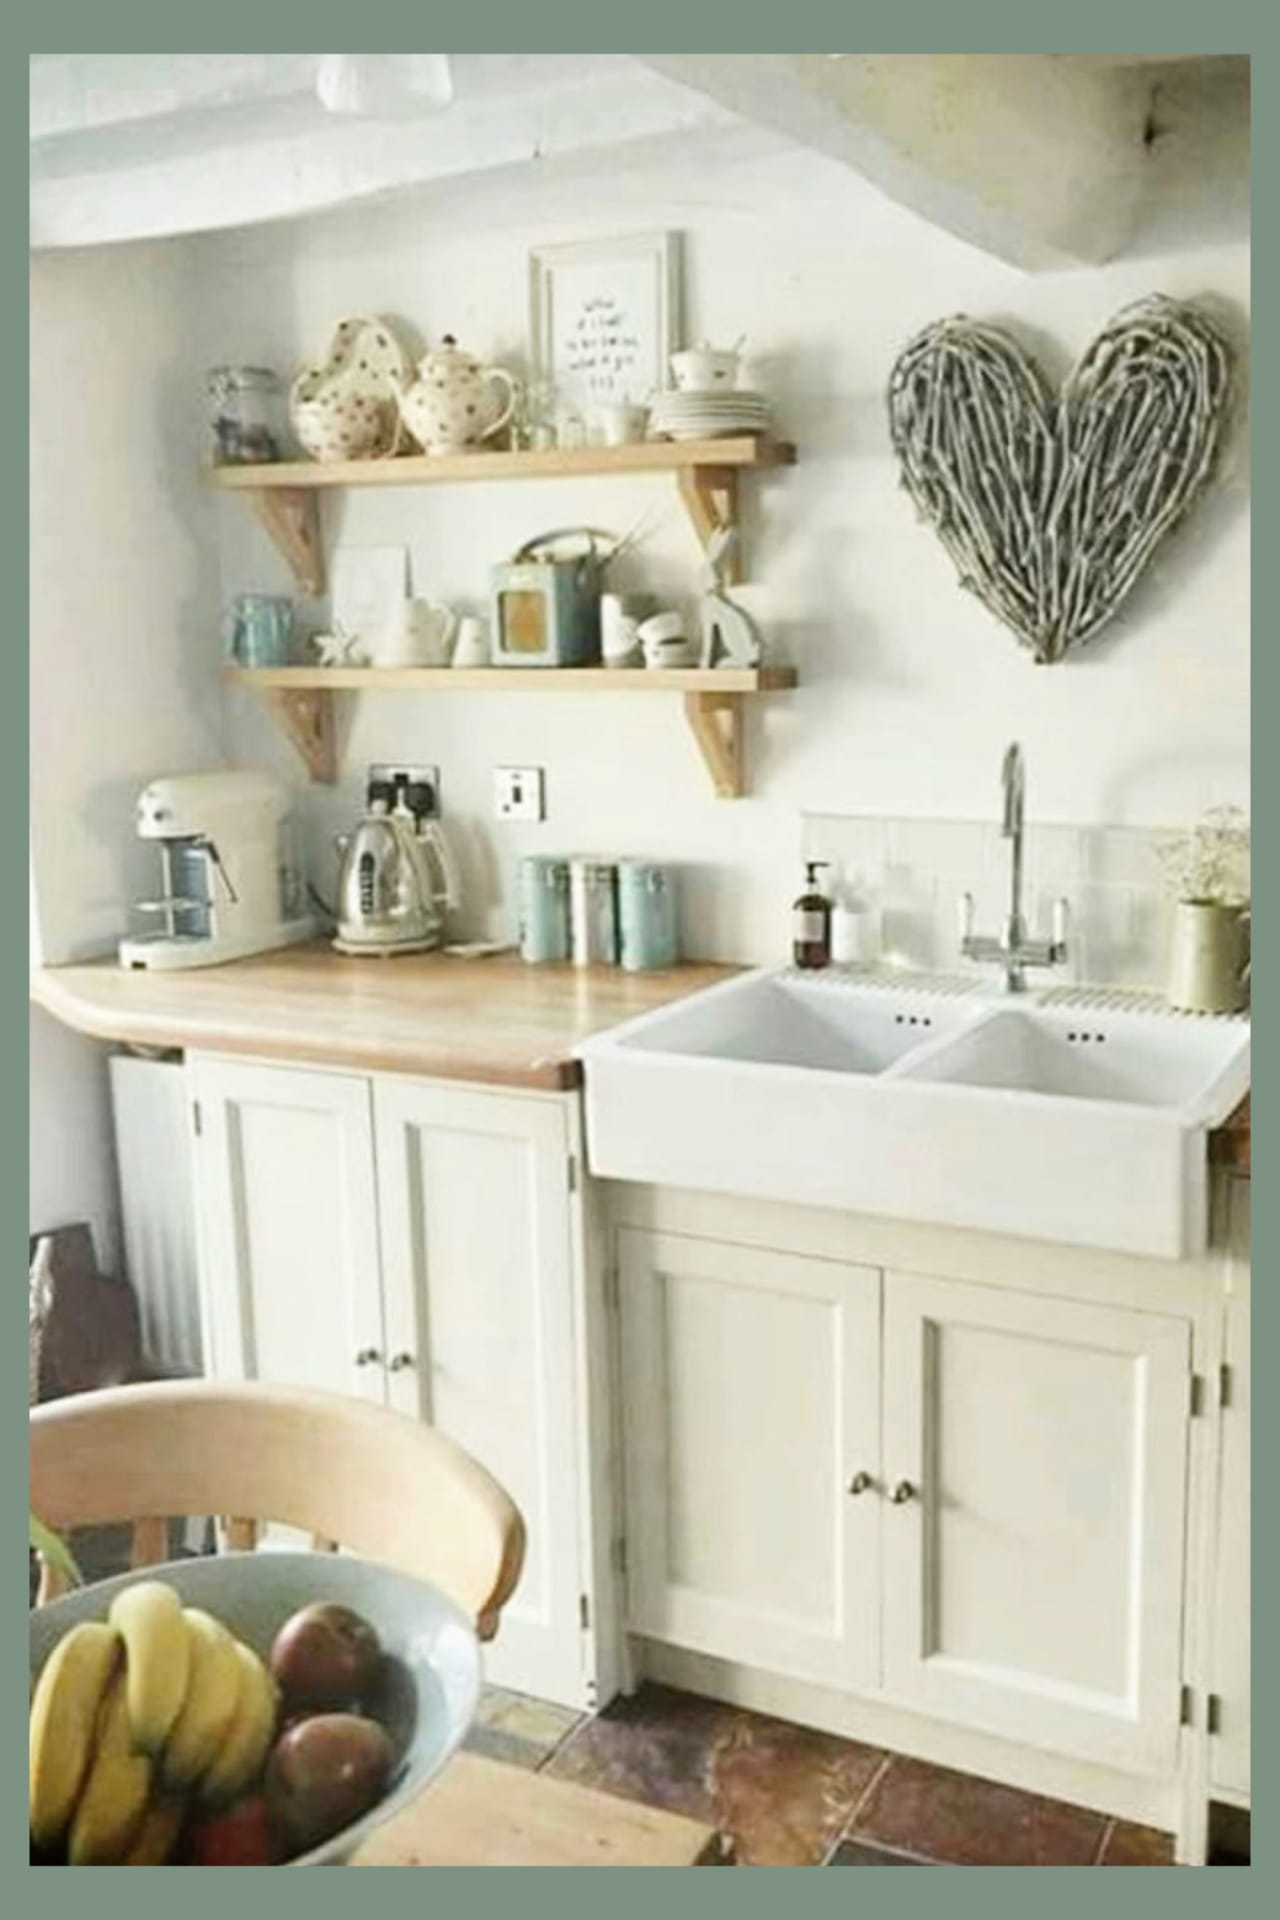 Farmhouse kitchen ideas - small country cottage farmhouse kitchen decorating ideas on a budget